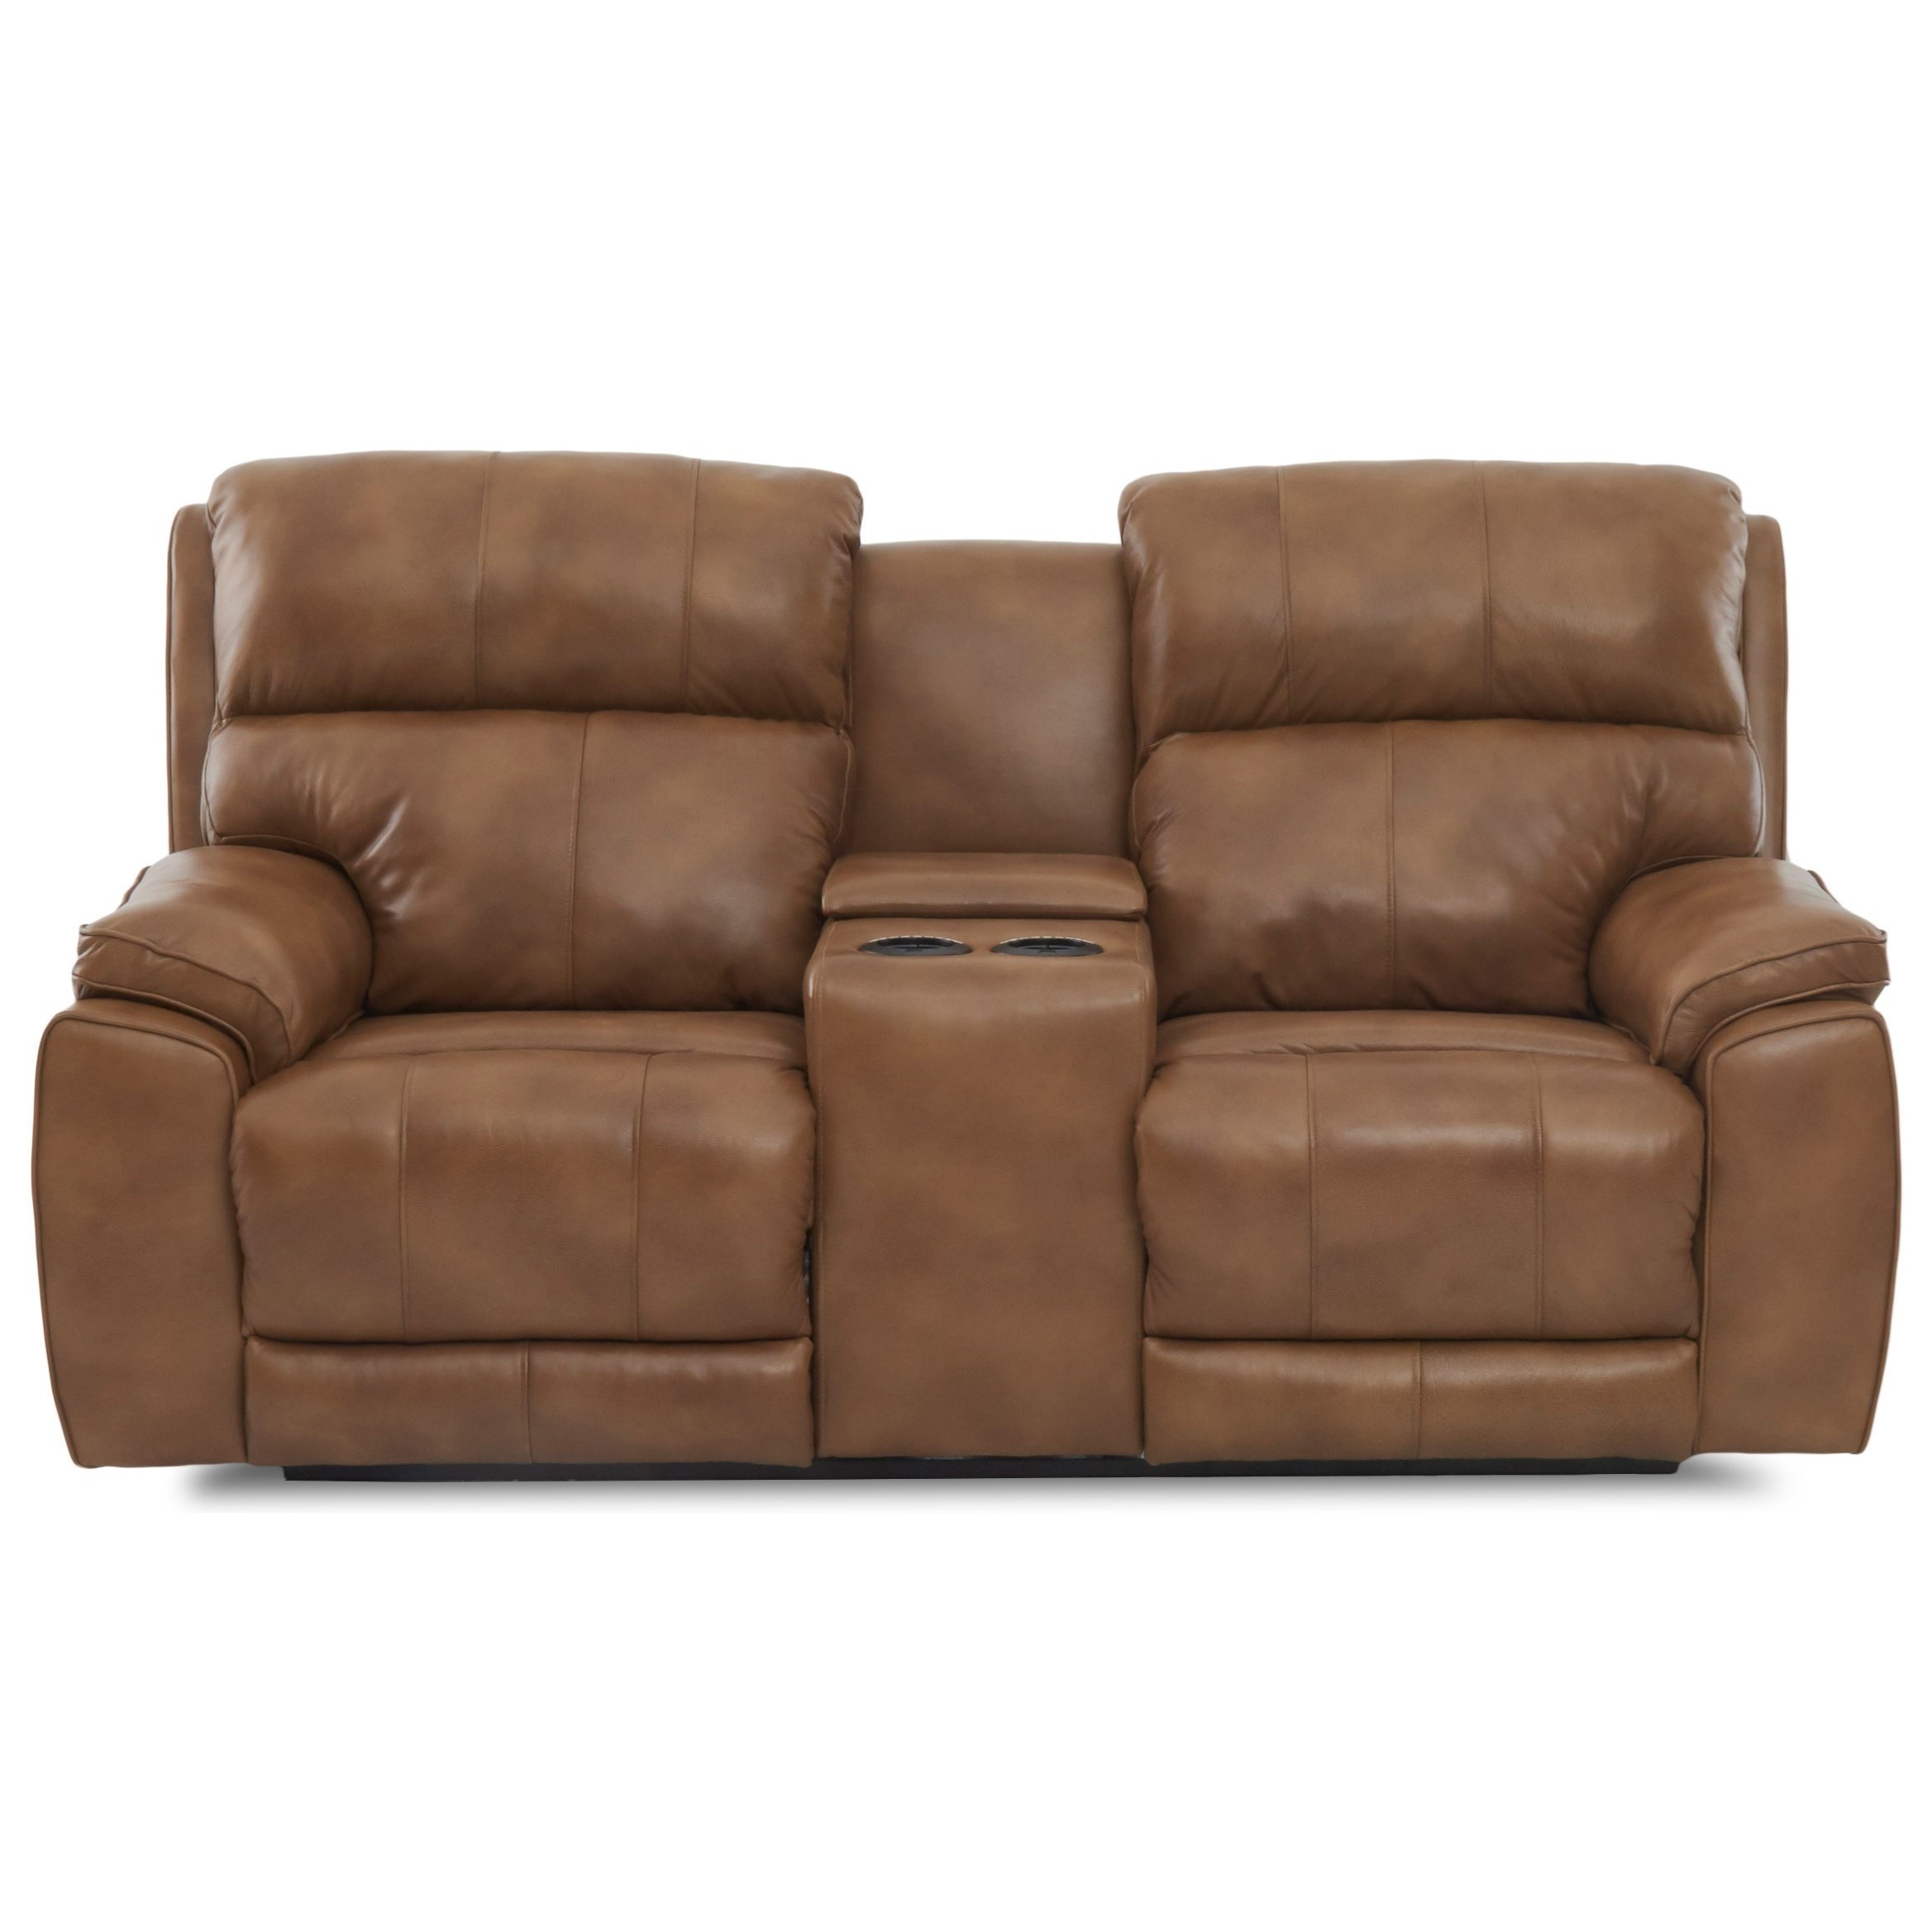 Klaussner Omaha Reclining Loveseat With Cupholder Storage Console Recliner Cup Holder And Storage38